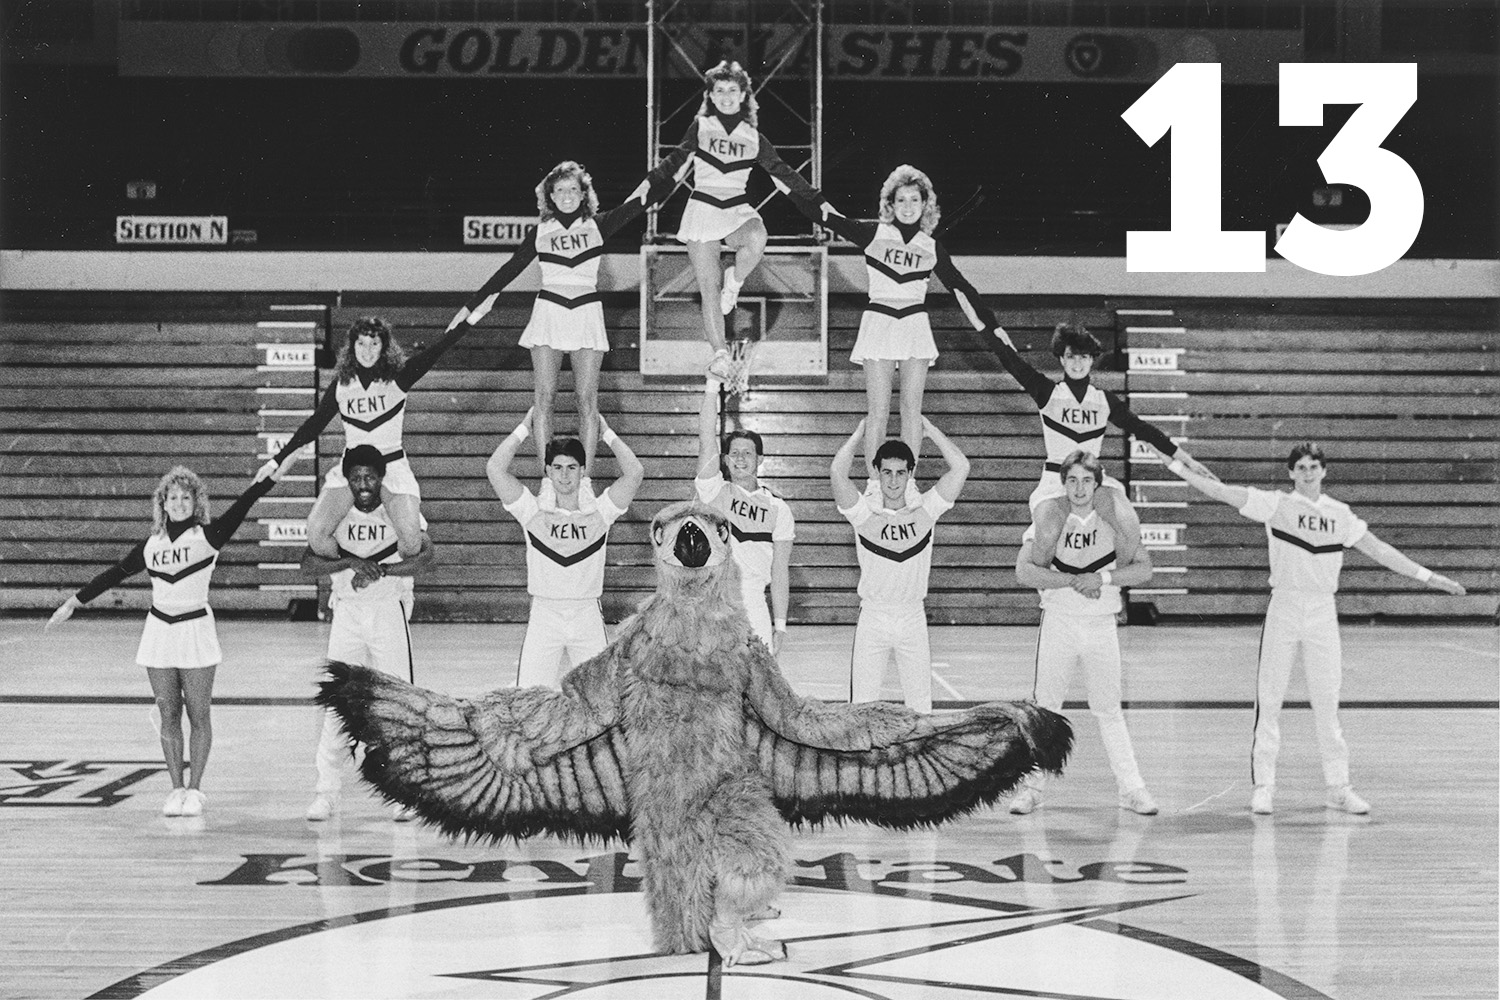 1986 basketball cheerleaders and the golden eagle mascot